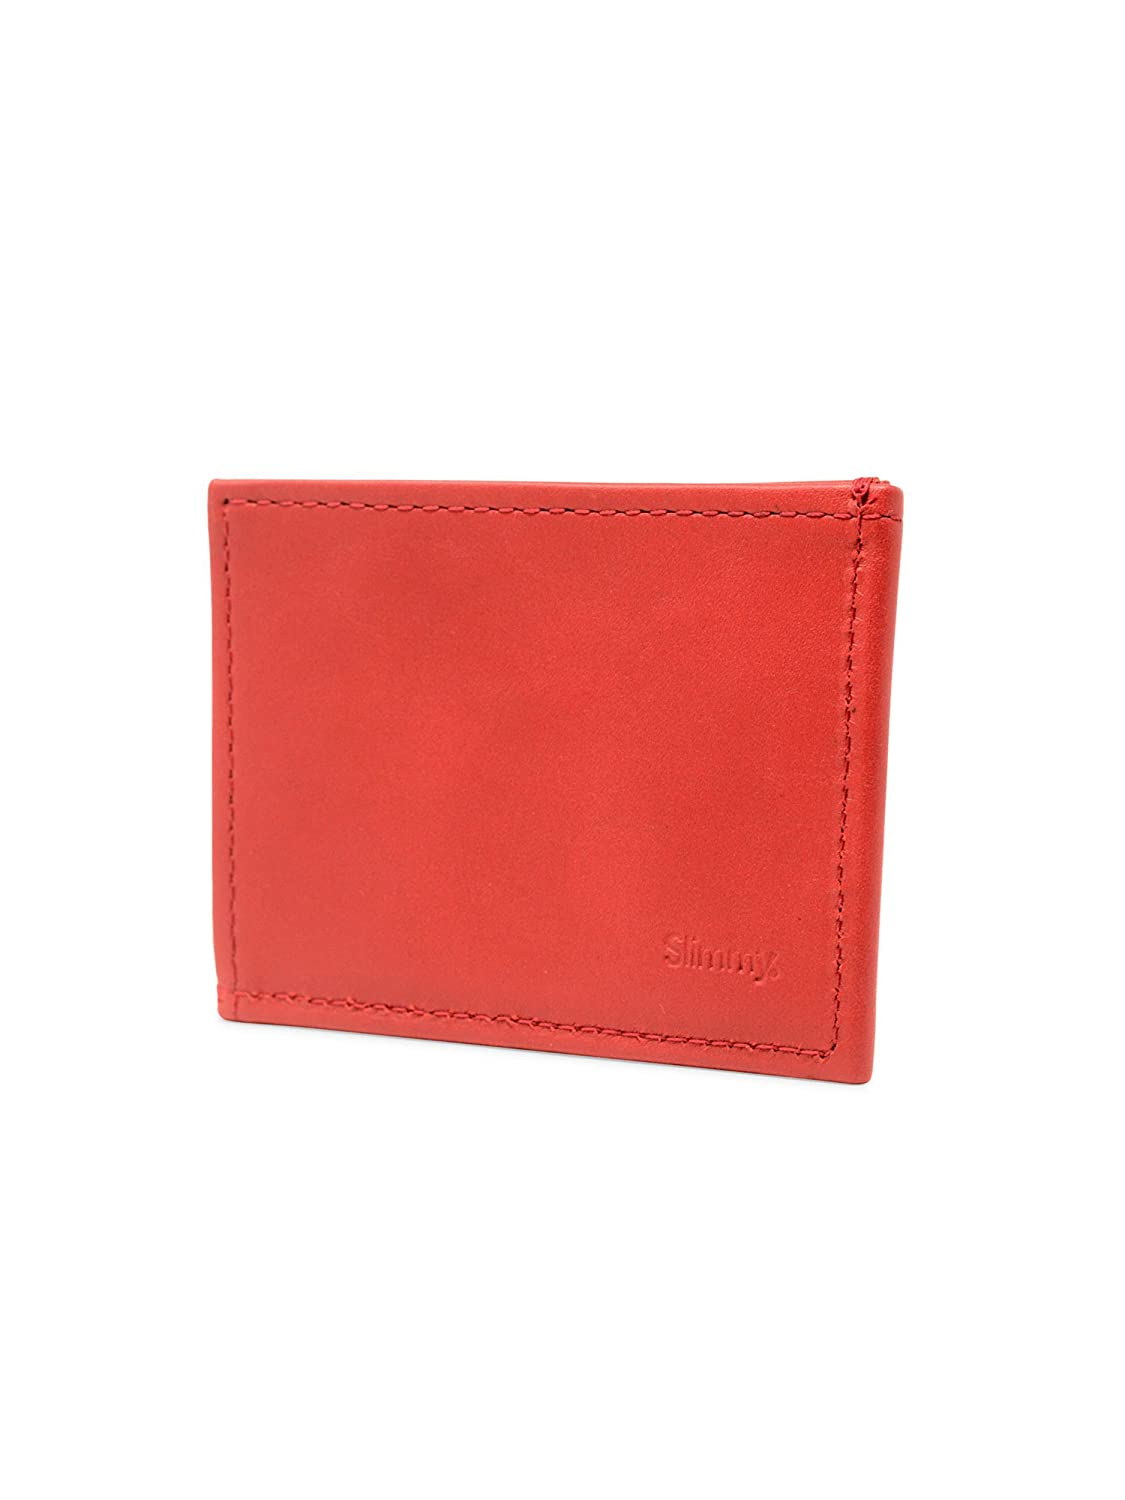 slimmy Orignial X Ultra Thin Leather RFID Wallet